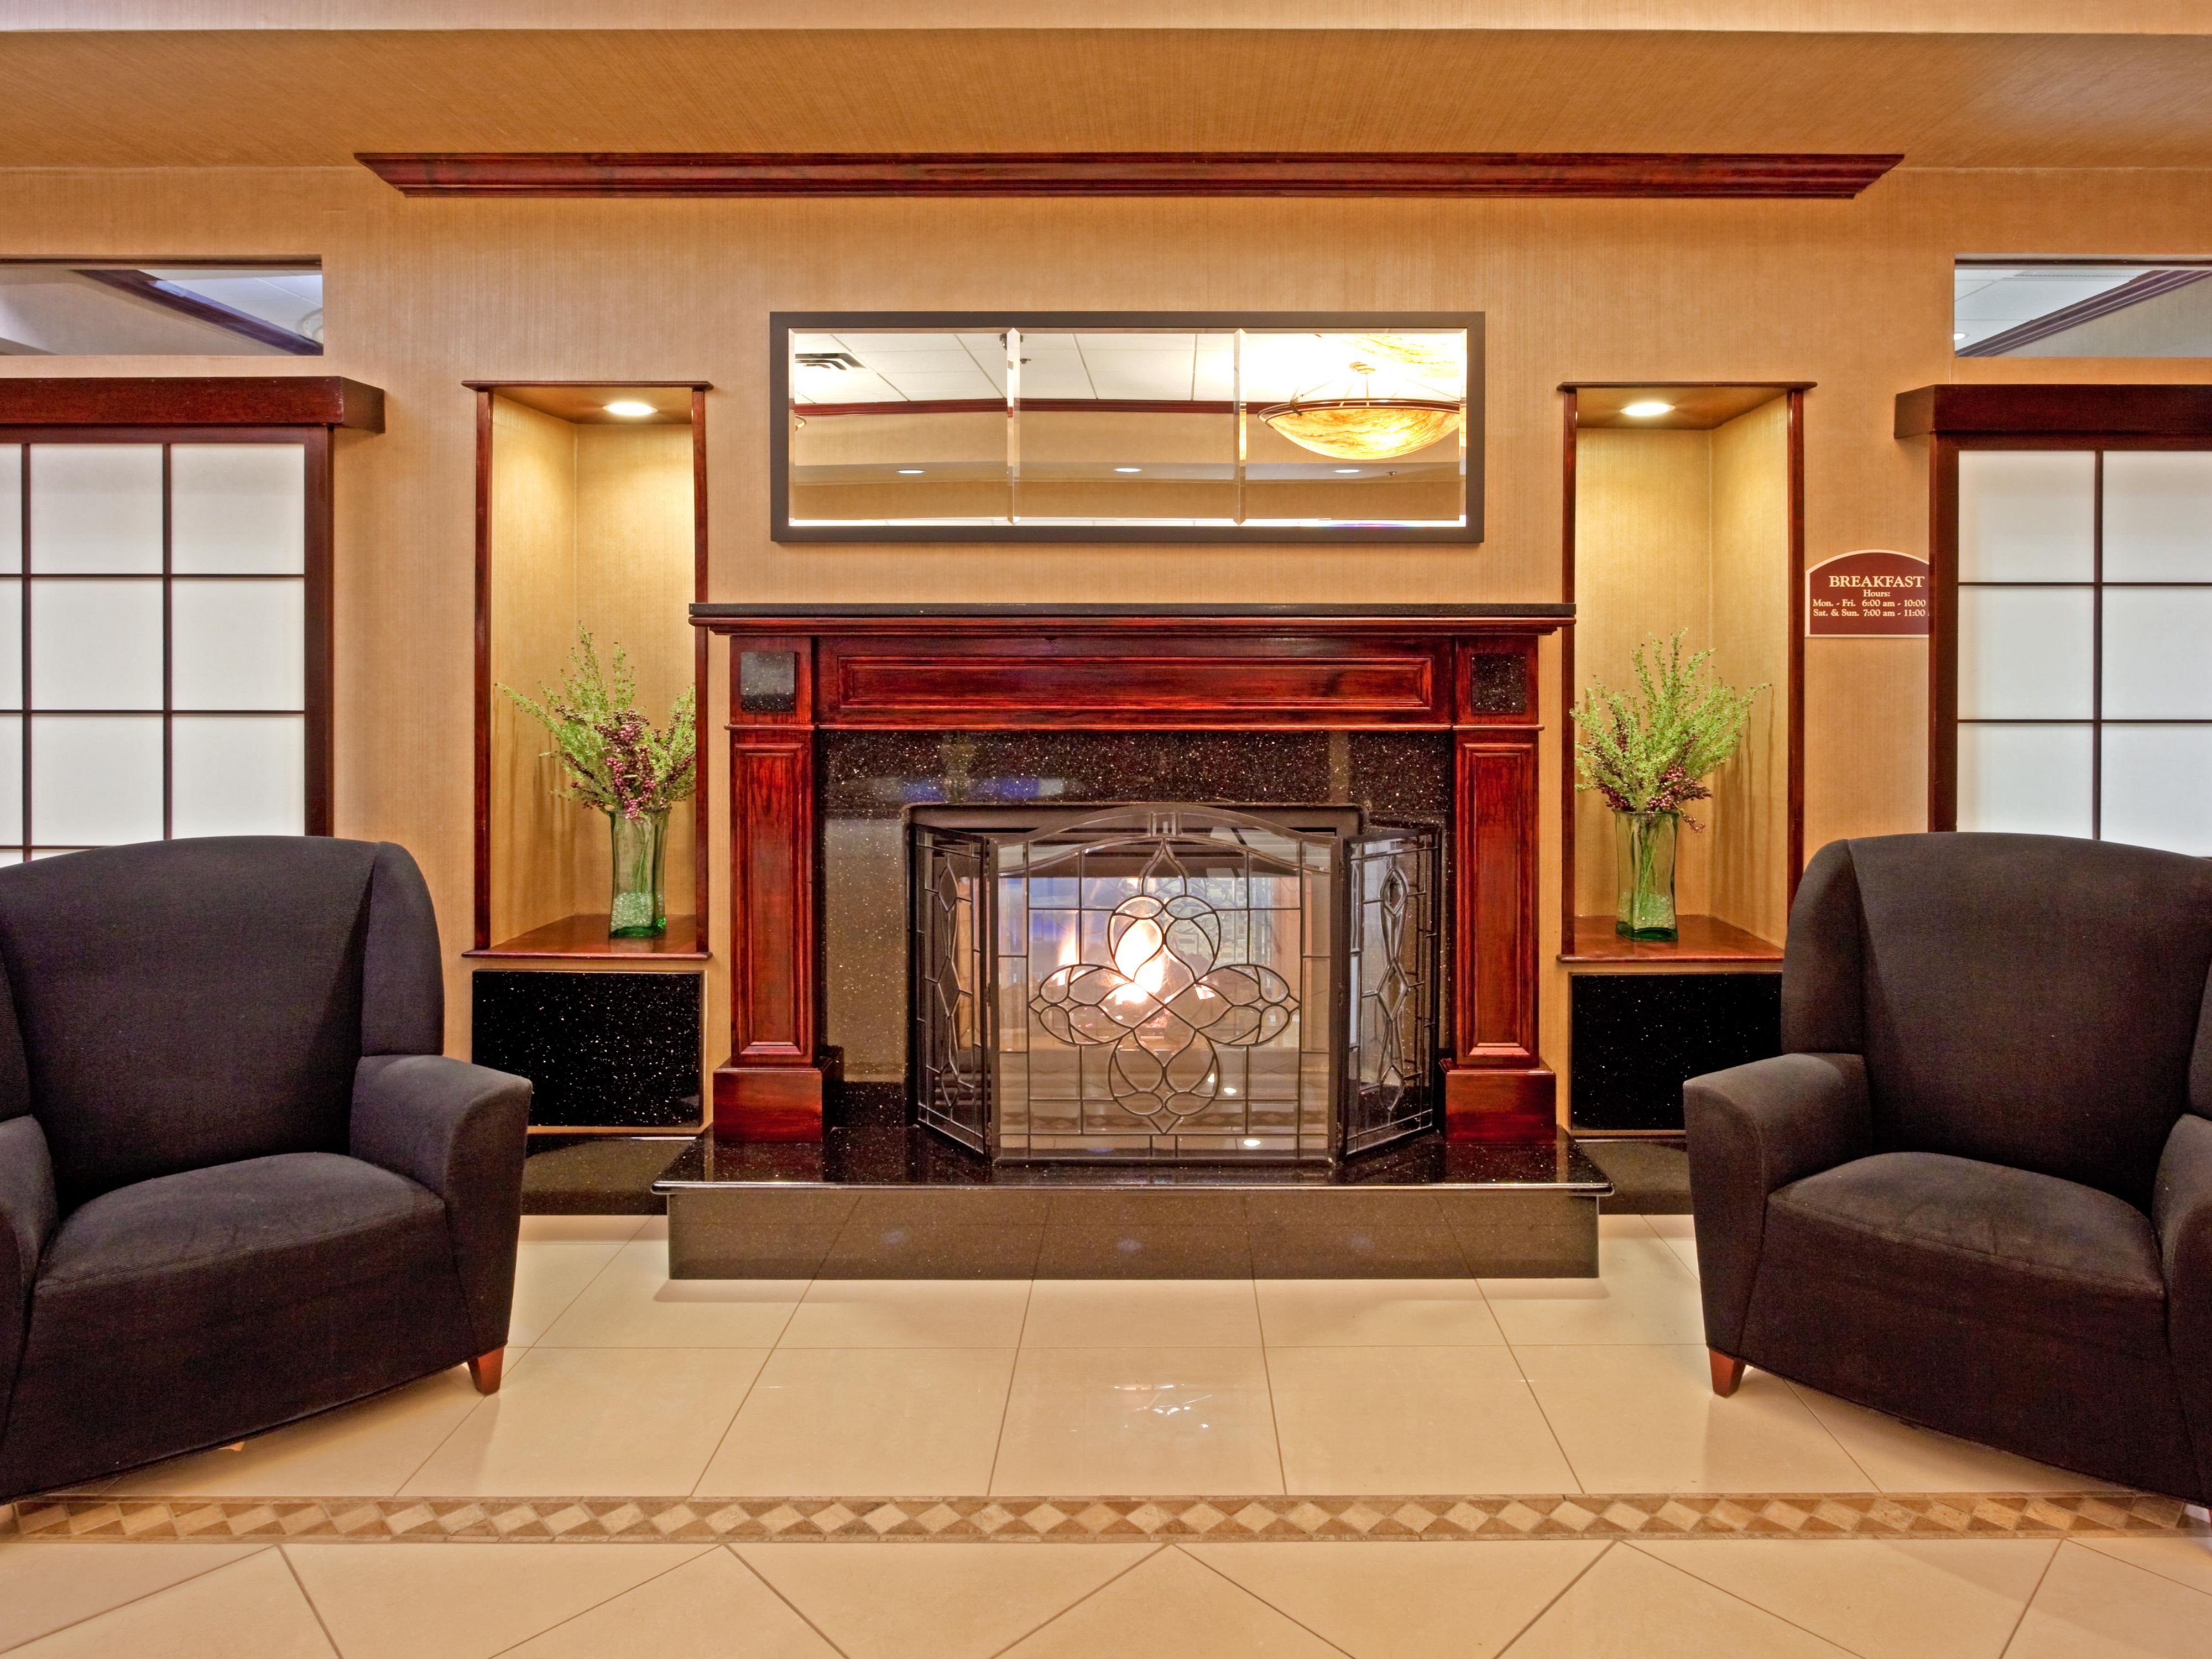 Relax and stay warm by our lobby fireplace